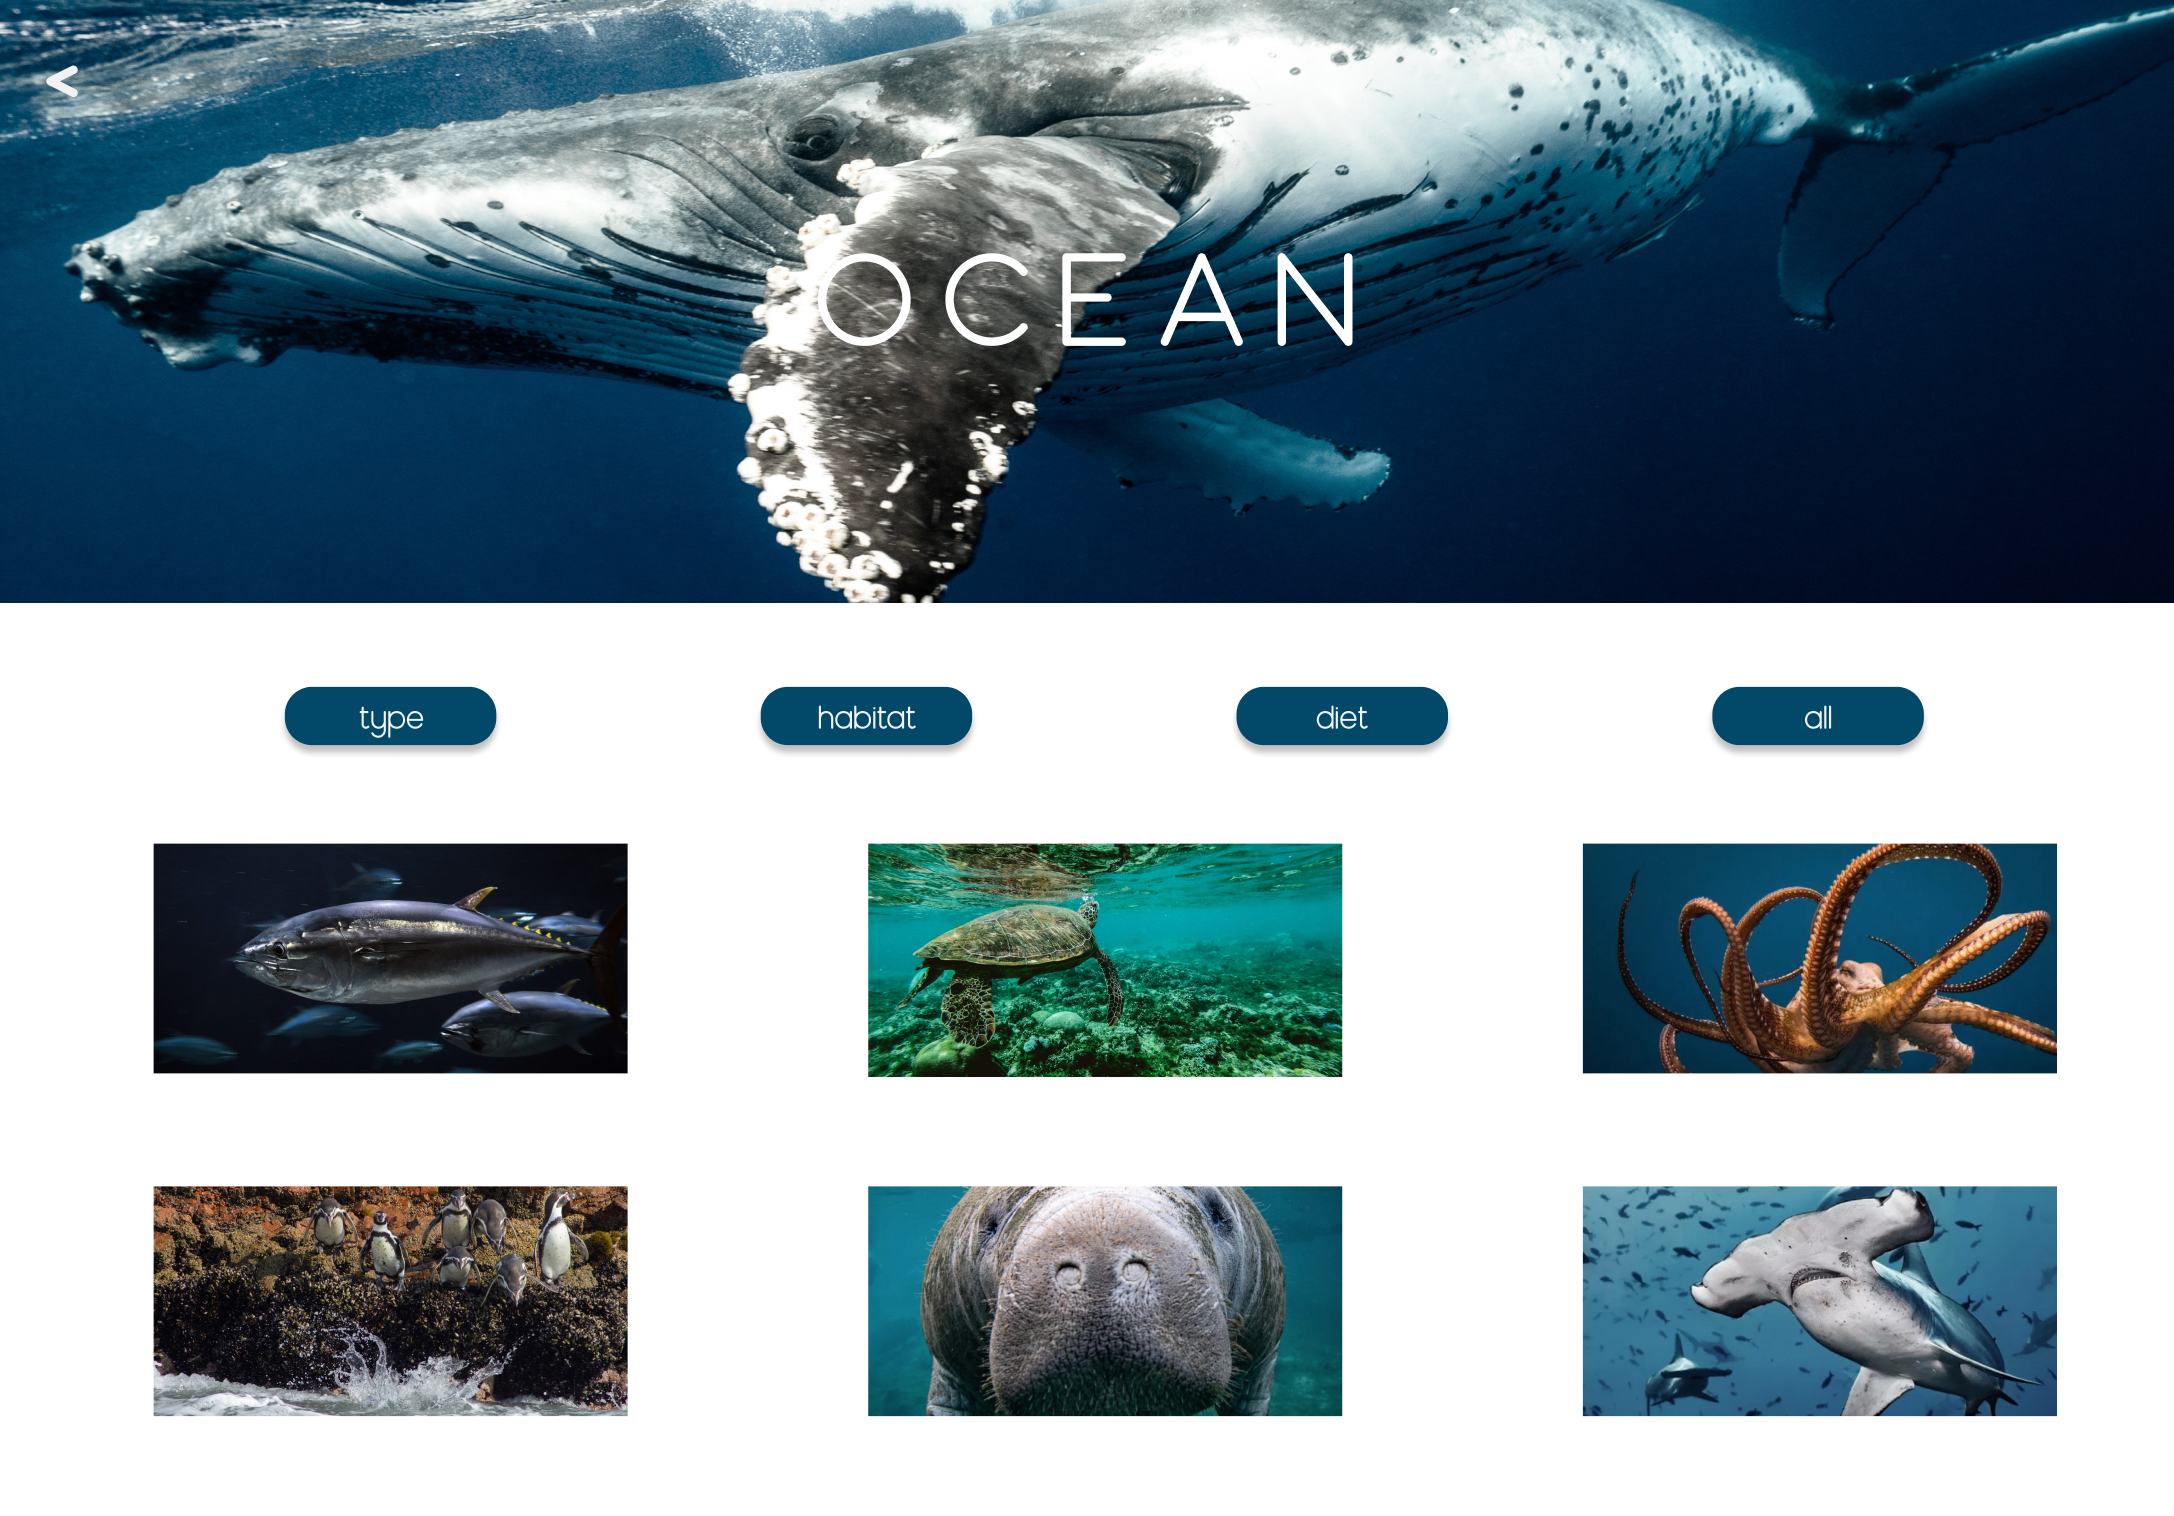 OCEAN PAGE TAKES YOU TO ENDANGERED ANIMALS IN THE OCEAN